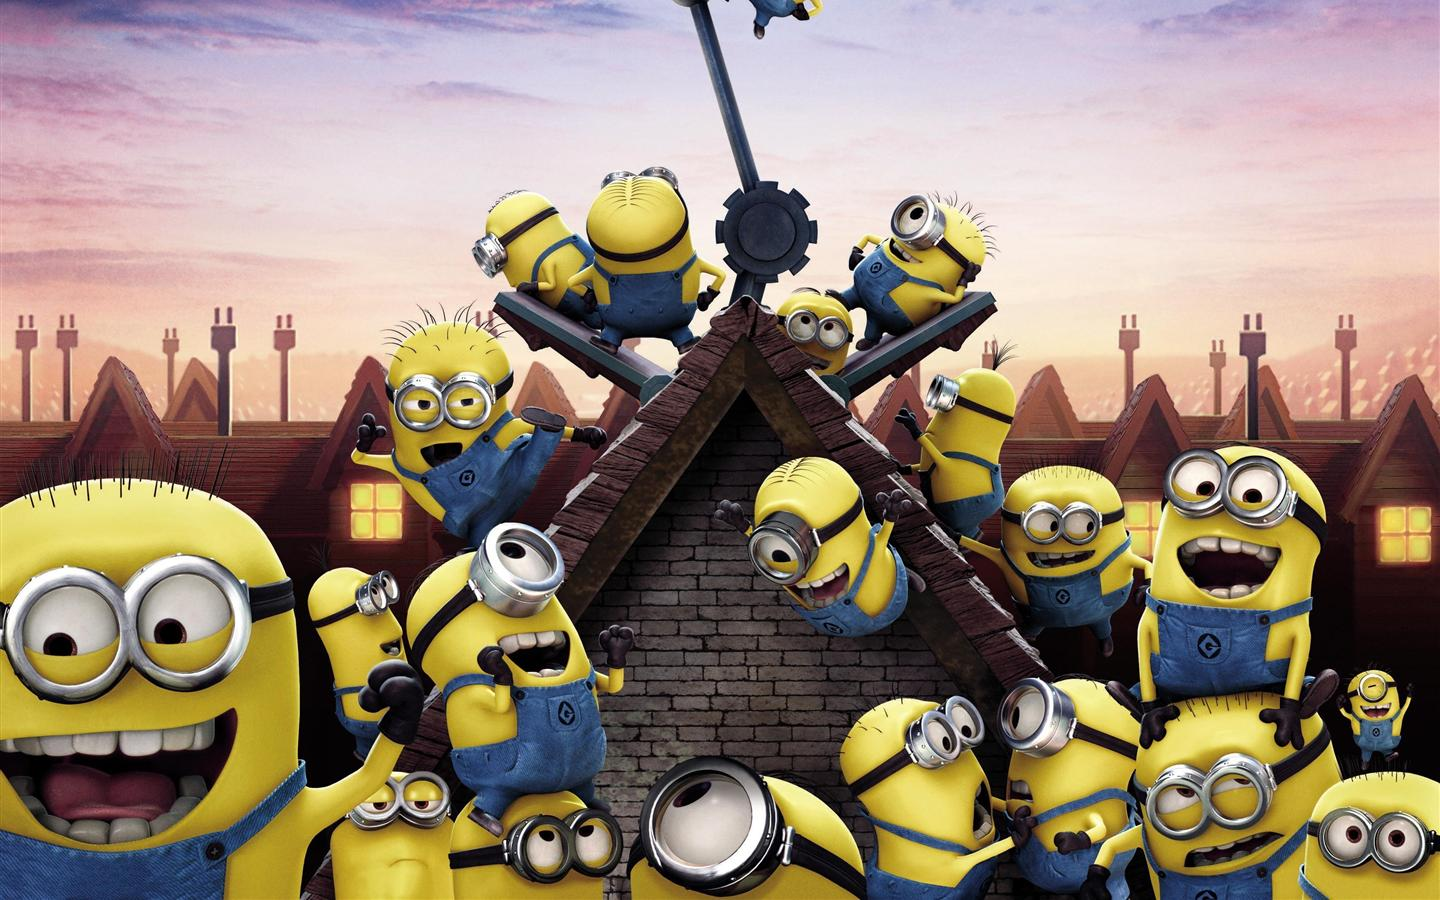 Free Download Wonderful Minions High Resolution Desktop Background Minions 1440x900 Wallpaper Teahub Io Support us by sharing the content, upvoting wallpapers on the page or sending your own background pictures. high resolution desktop background